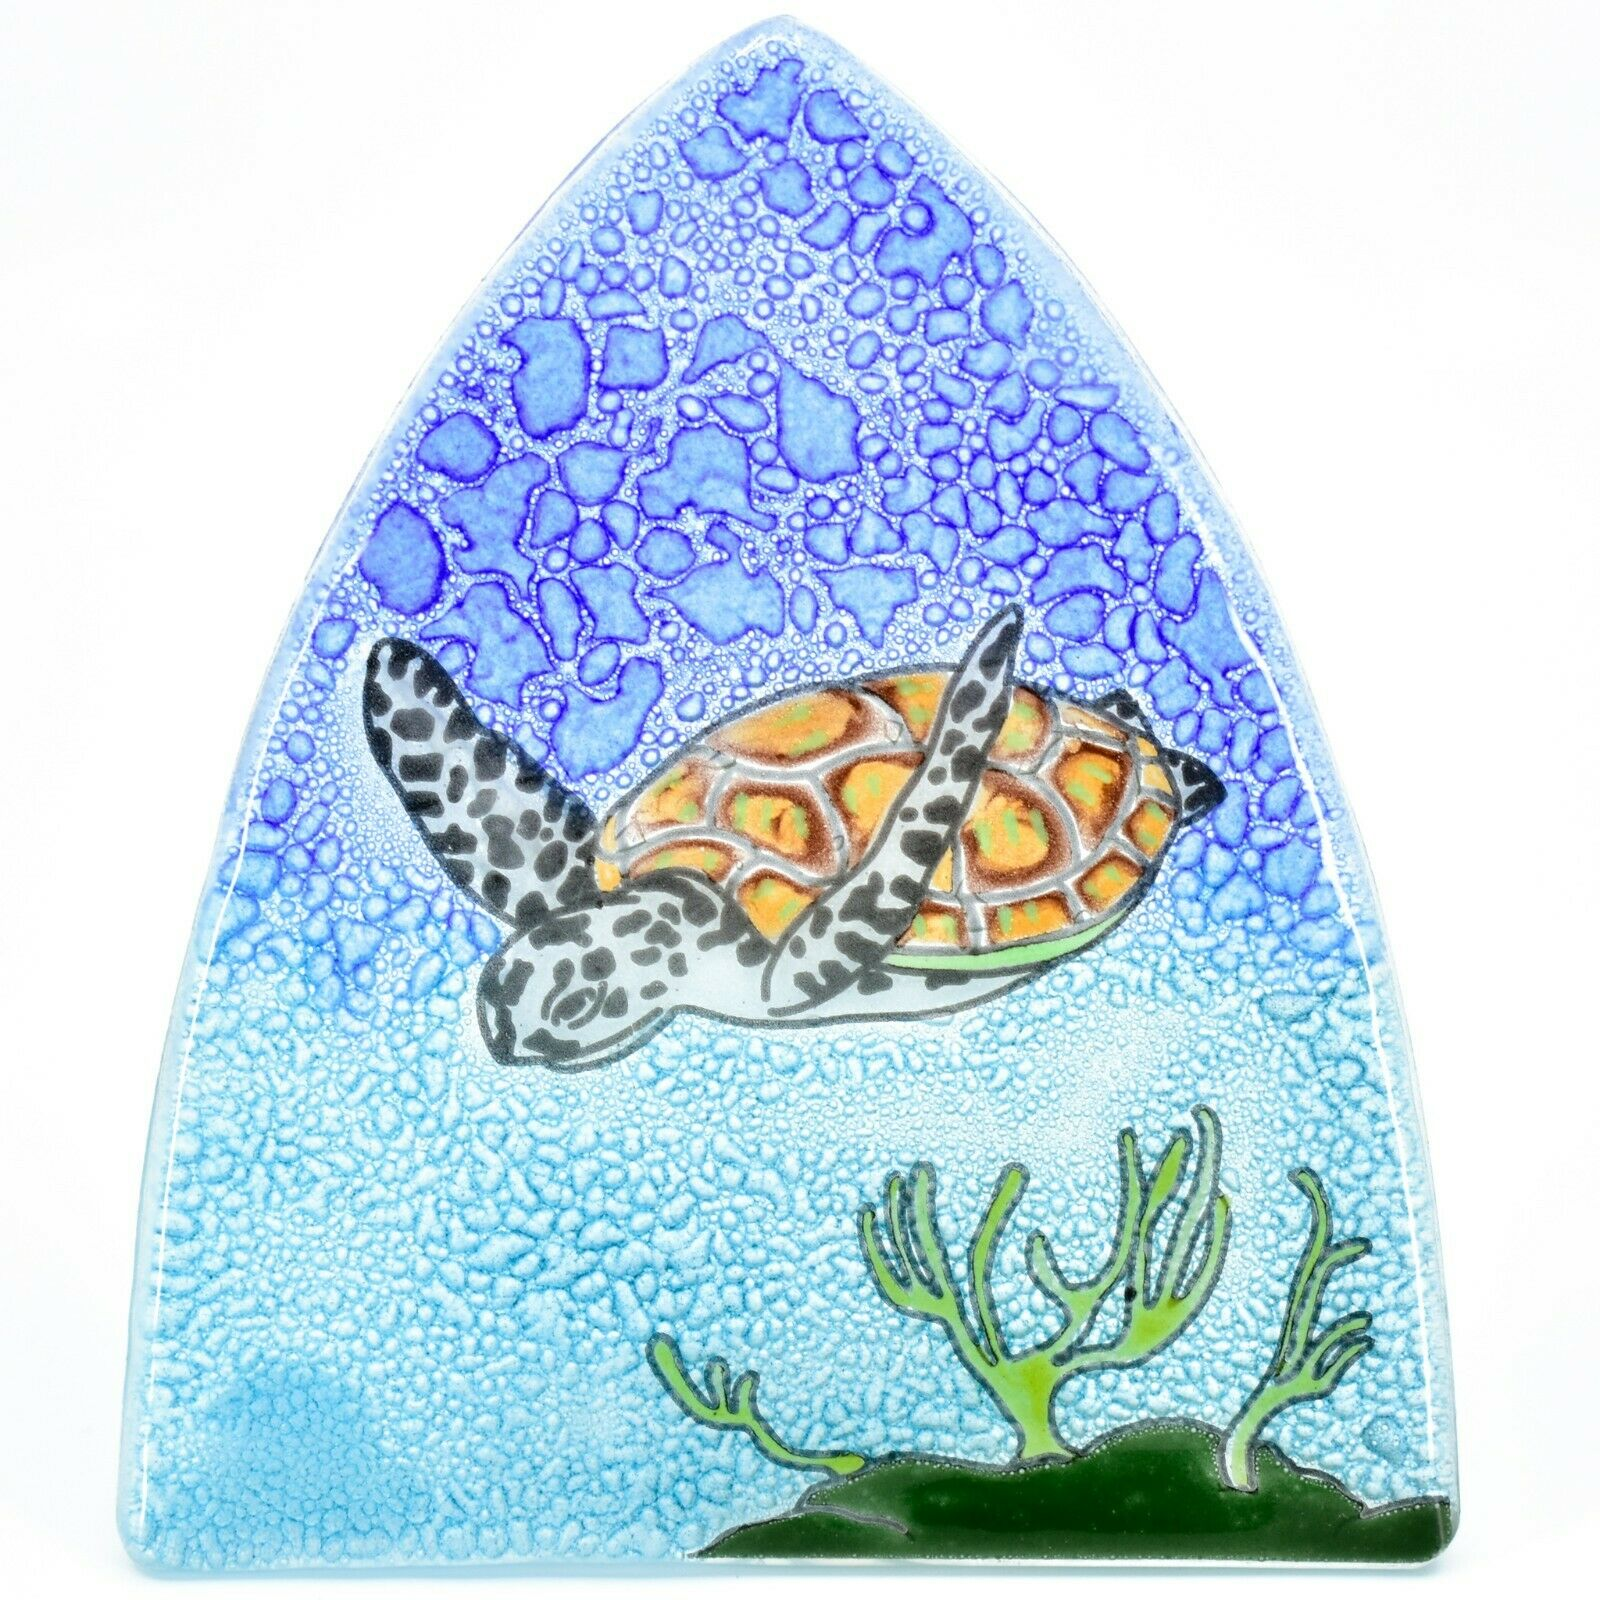 Sea Turtle Nightlight